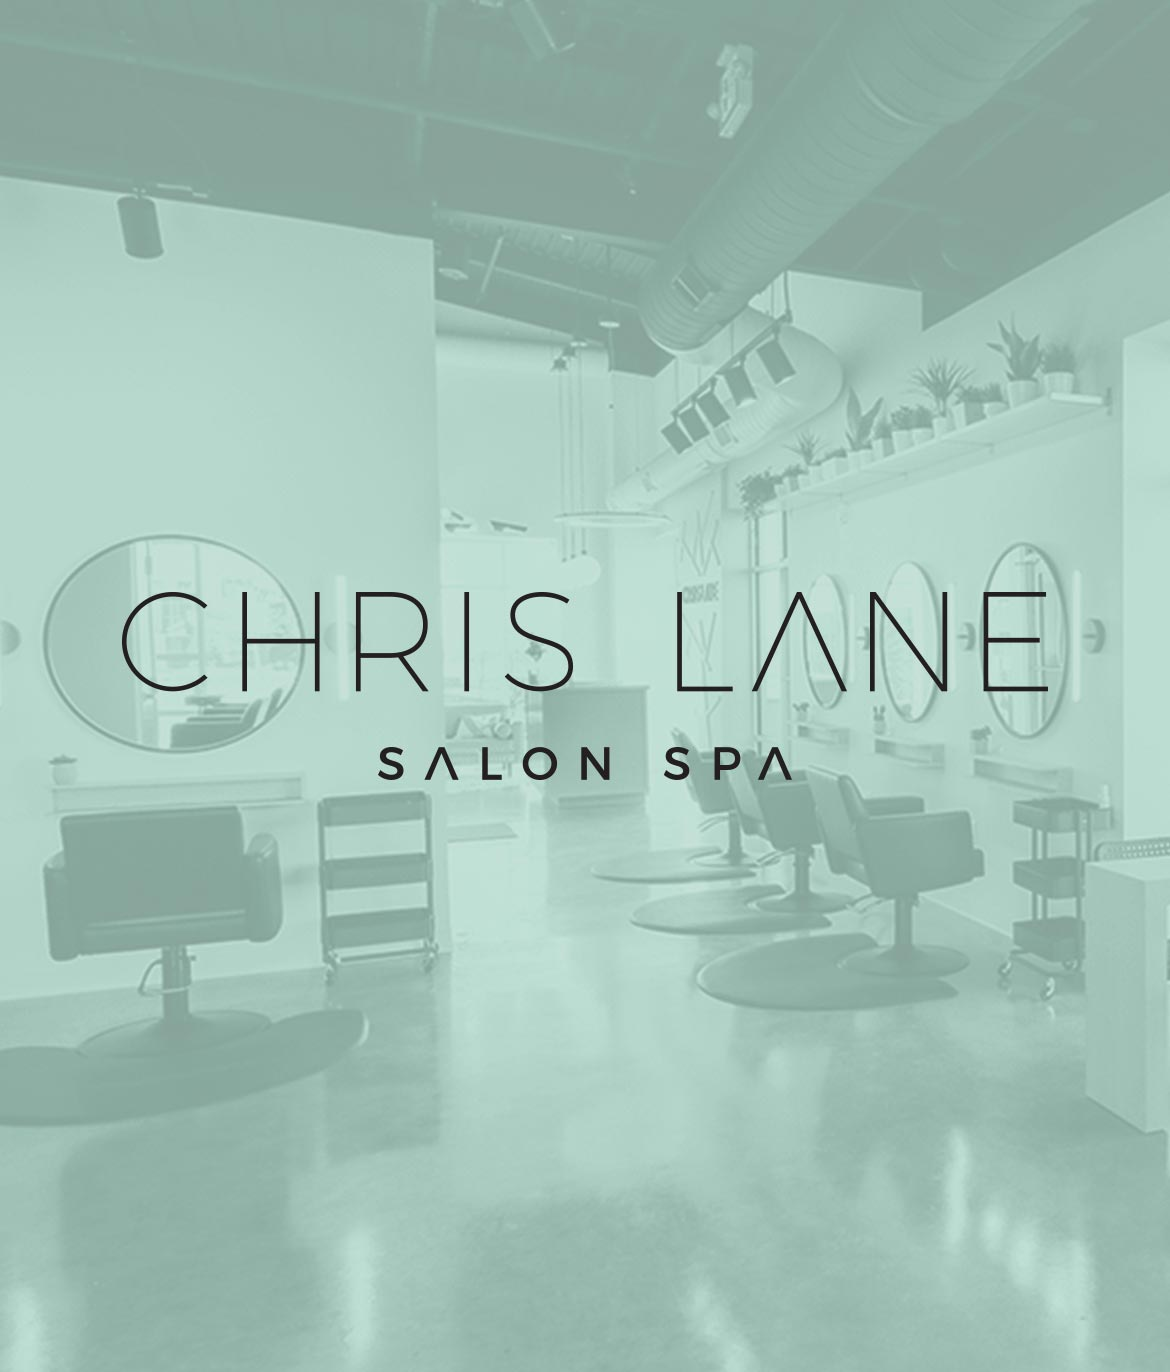 Chris Lane — Brand Identity